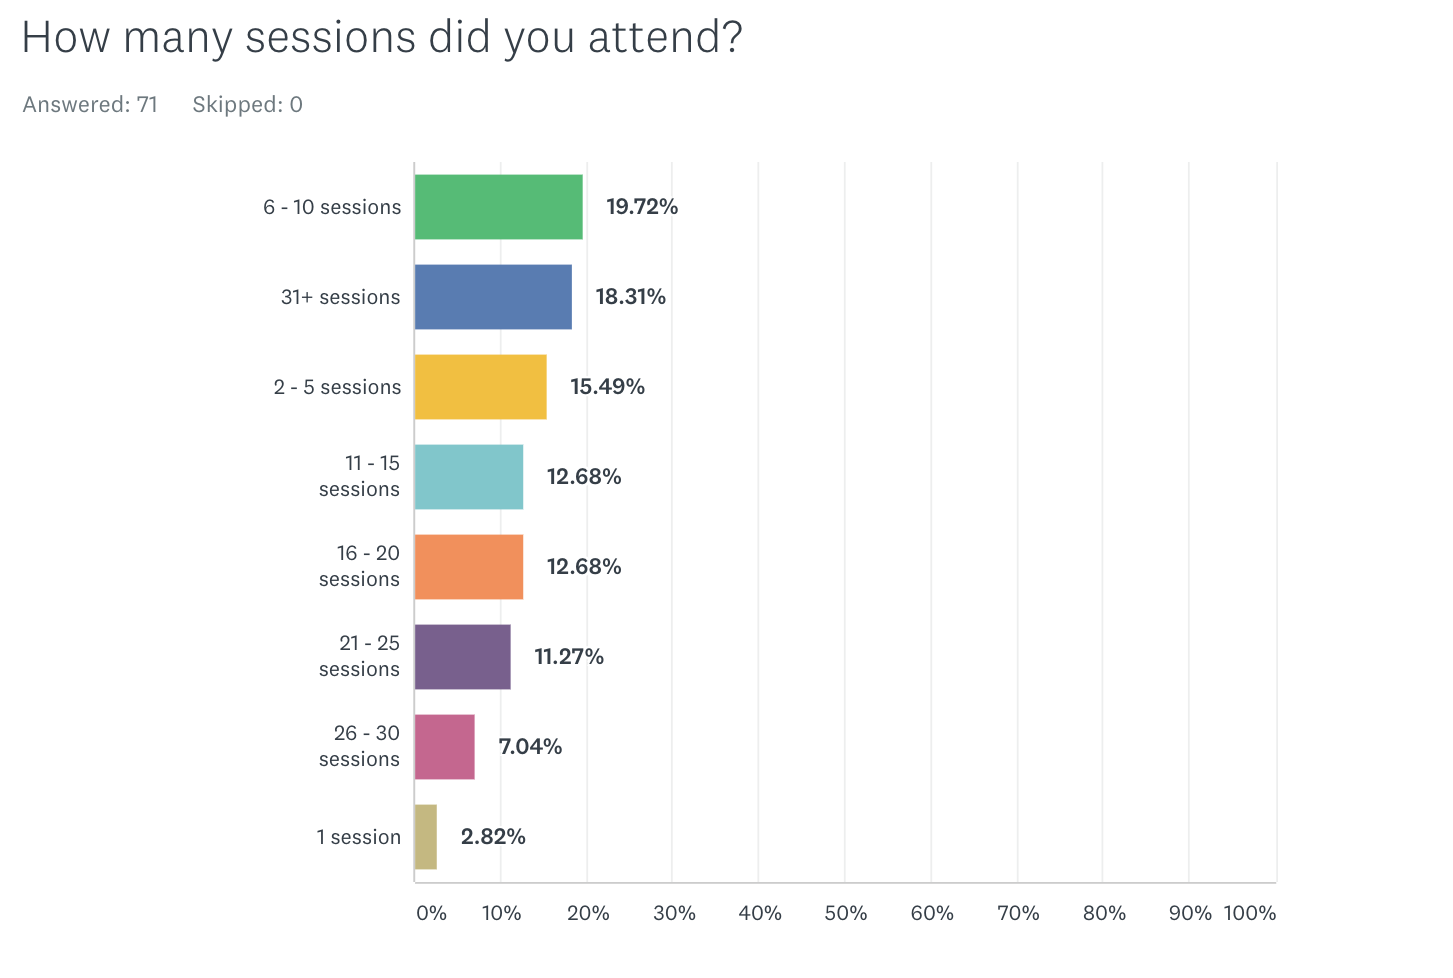 How many sessions did you attend?